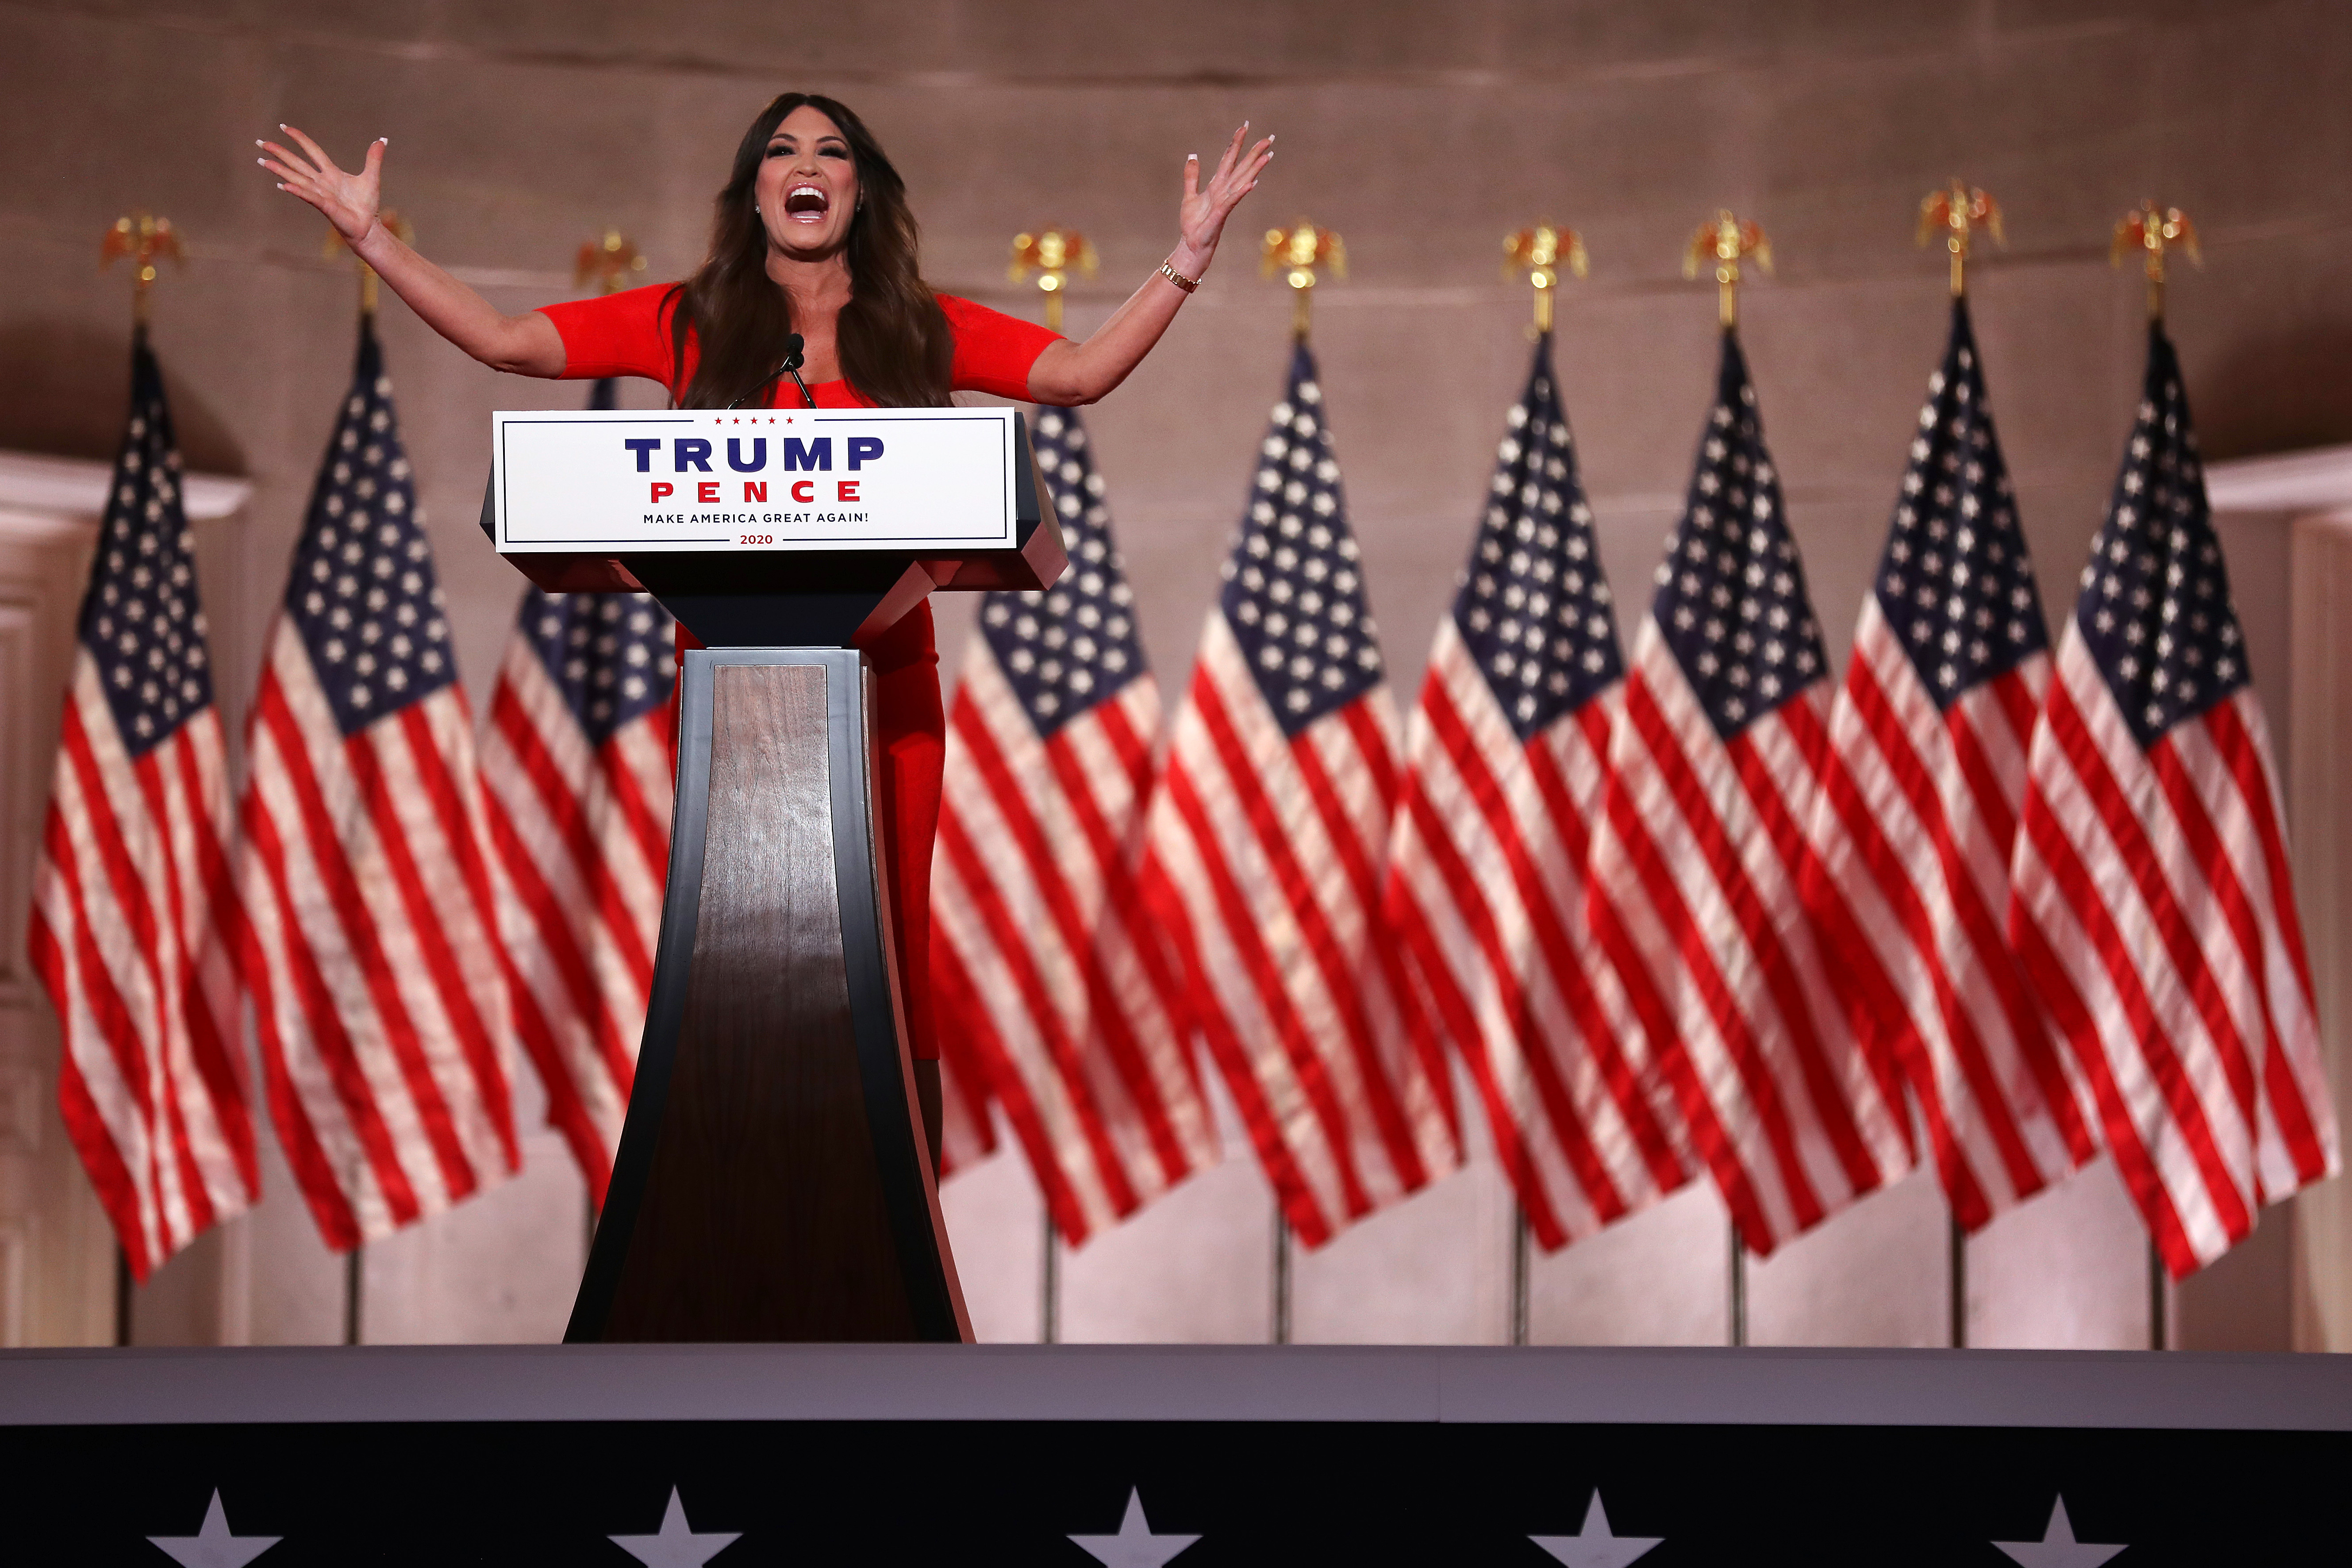 Standing behind a podium and in front of a long row of American flags, Kimberly Guilfoyle pre-records her address to the Republican National Convention at the Mellon Auditorium on August 24, 2020 in Washington, DC.